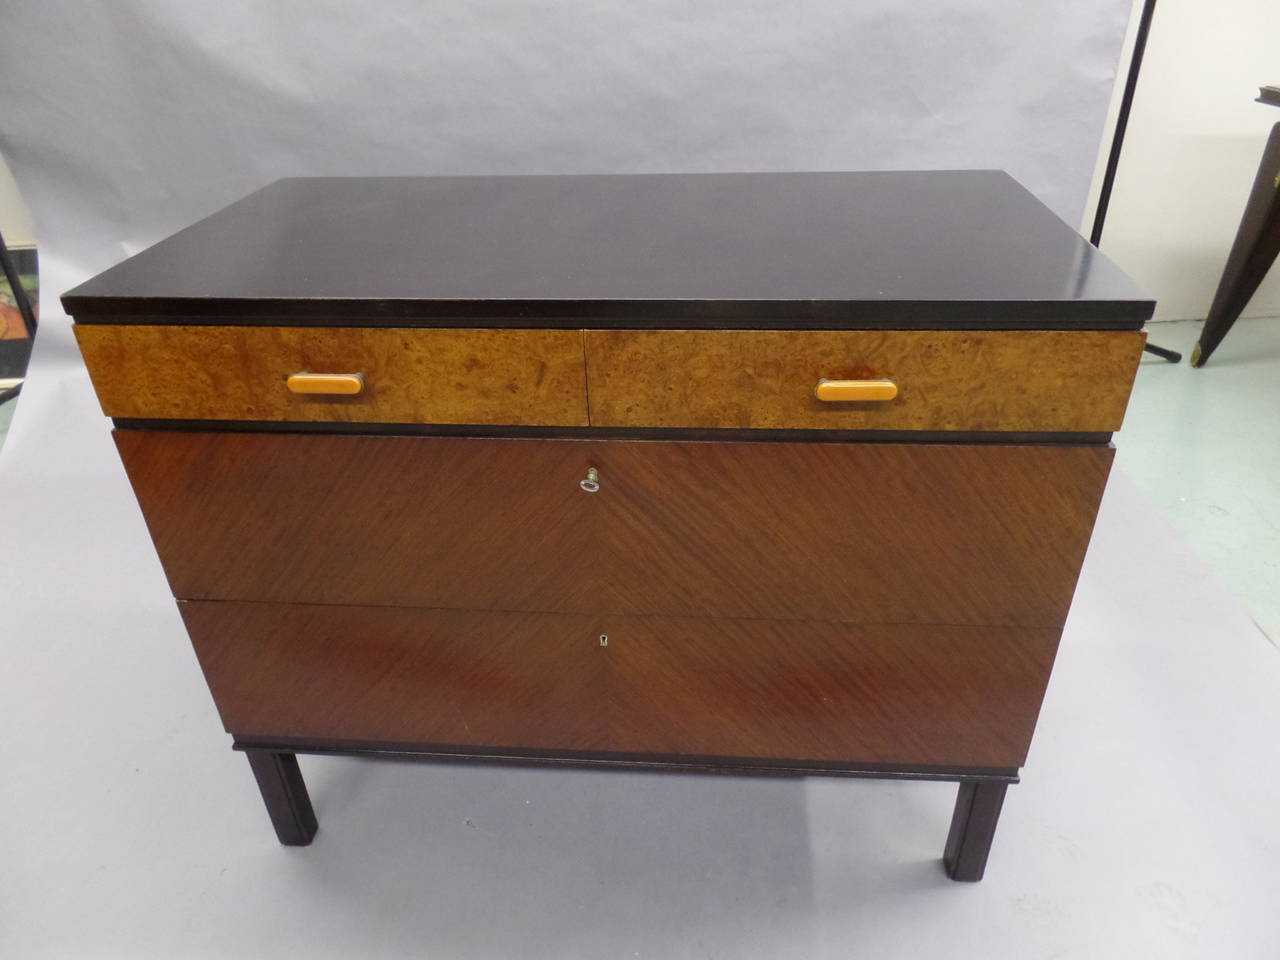 Swedish Mid-Century Modern Chest of Drawers / Commode by Axel Einar Hjort, 1930 3